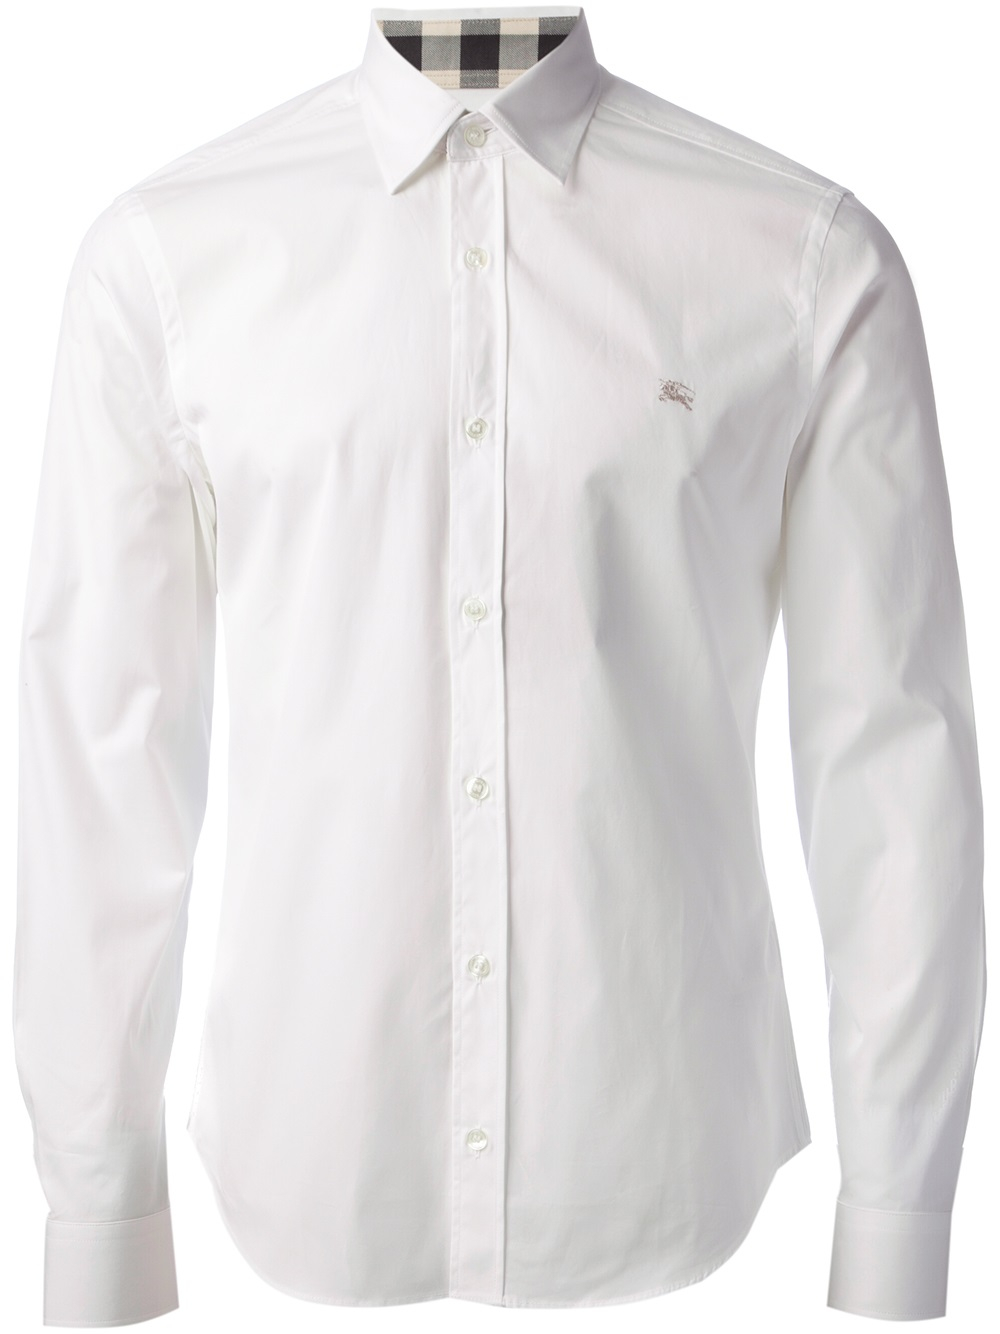 Burberry brit classic shirt in white for men lyst for Where are burberry shirts made